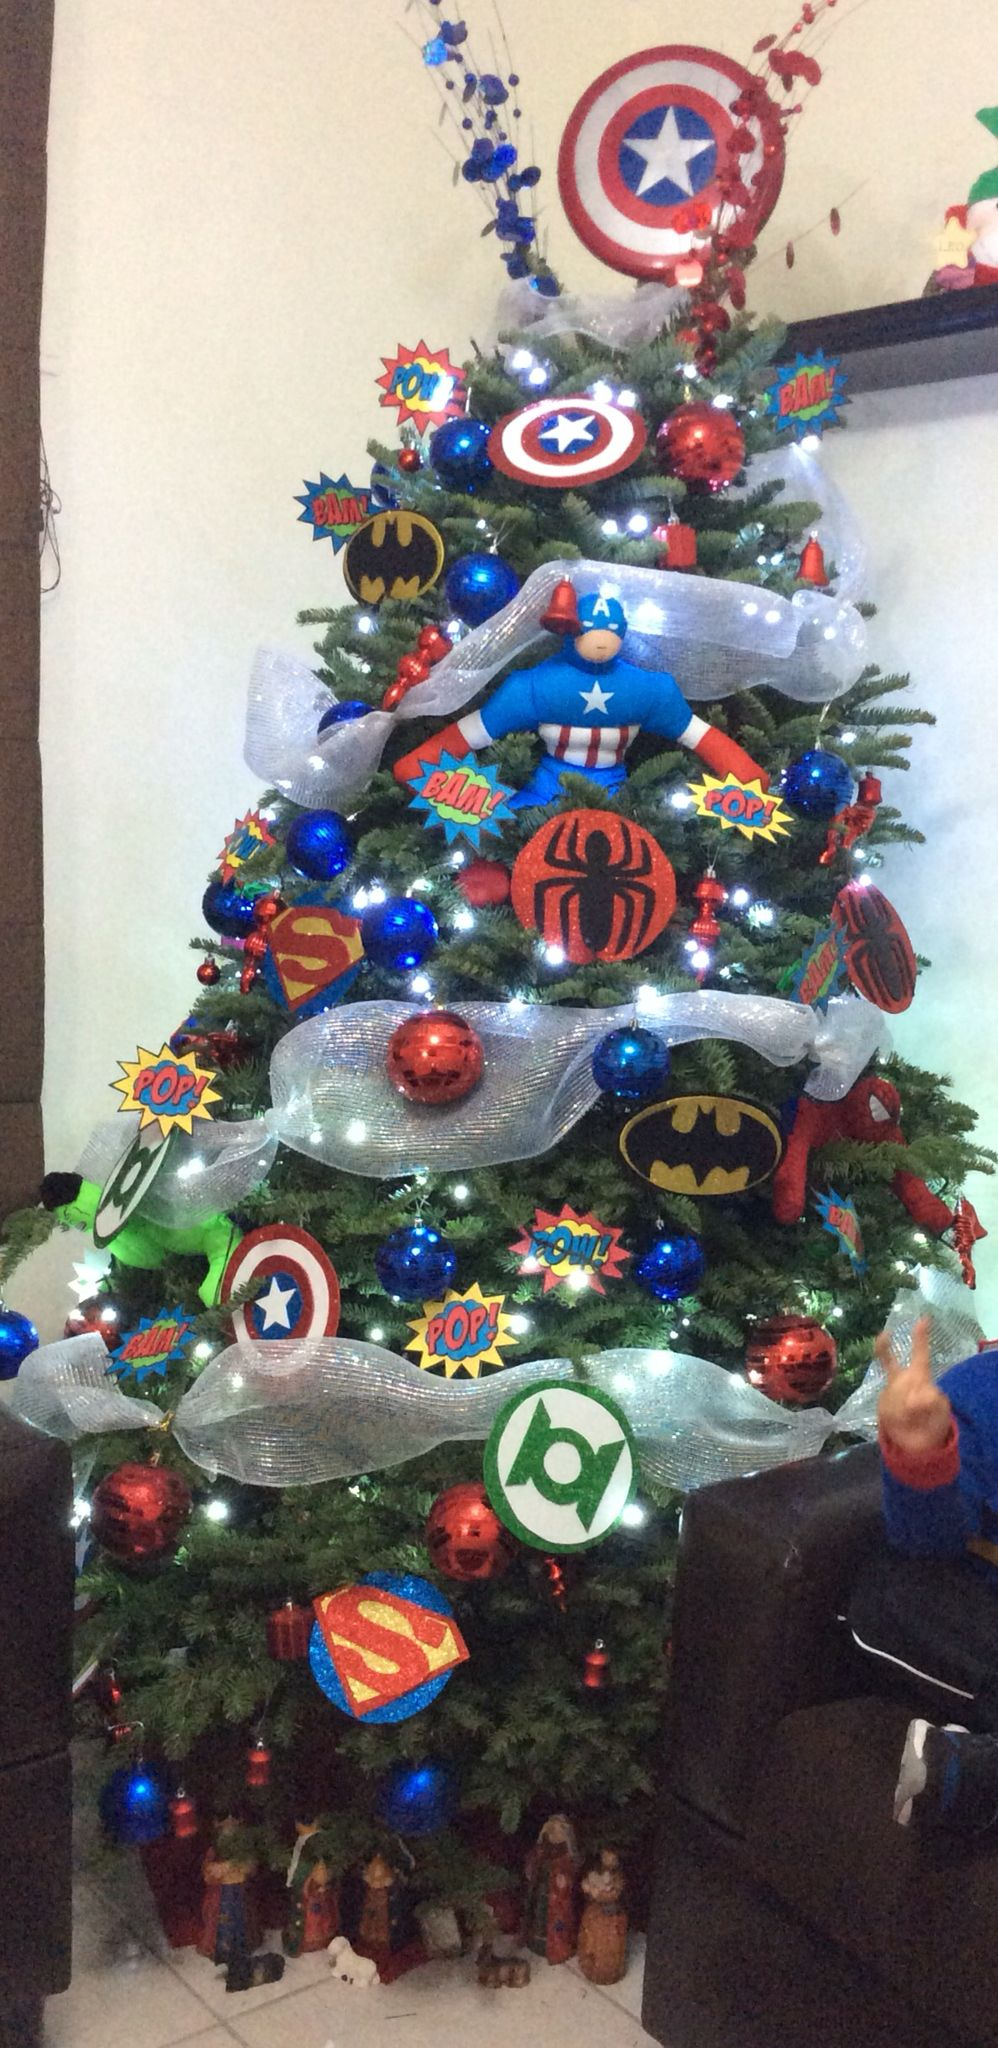 Superheroes christmas tree decoracion navide a super for Arboles navidenos decorados